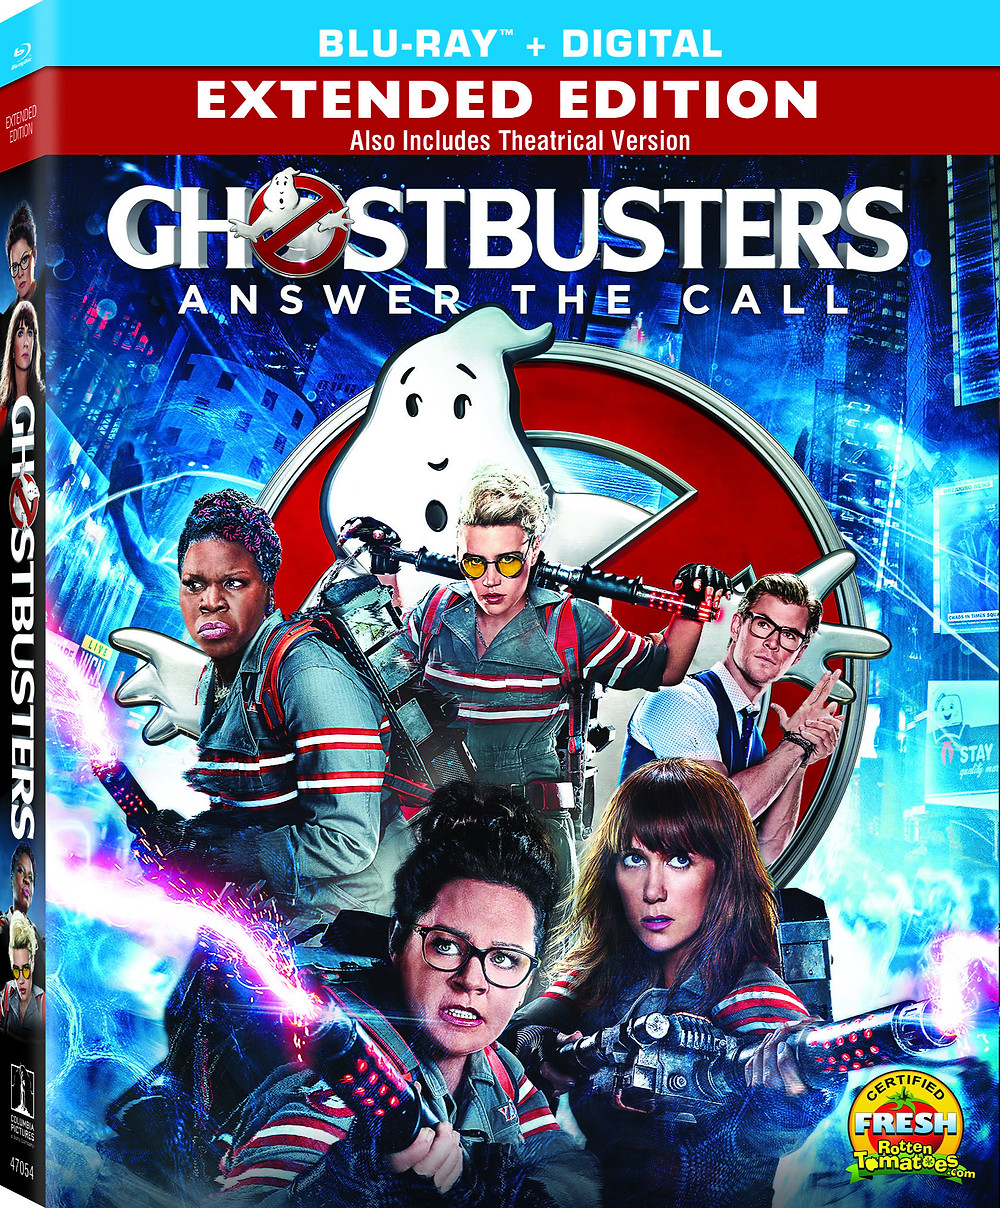 Ghostbusters (2016) Box Art